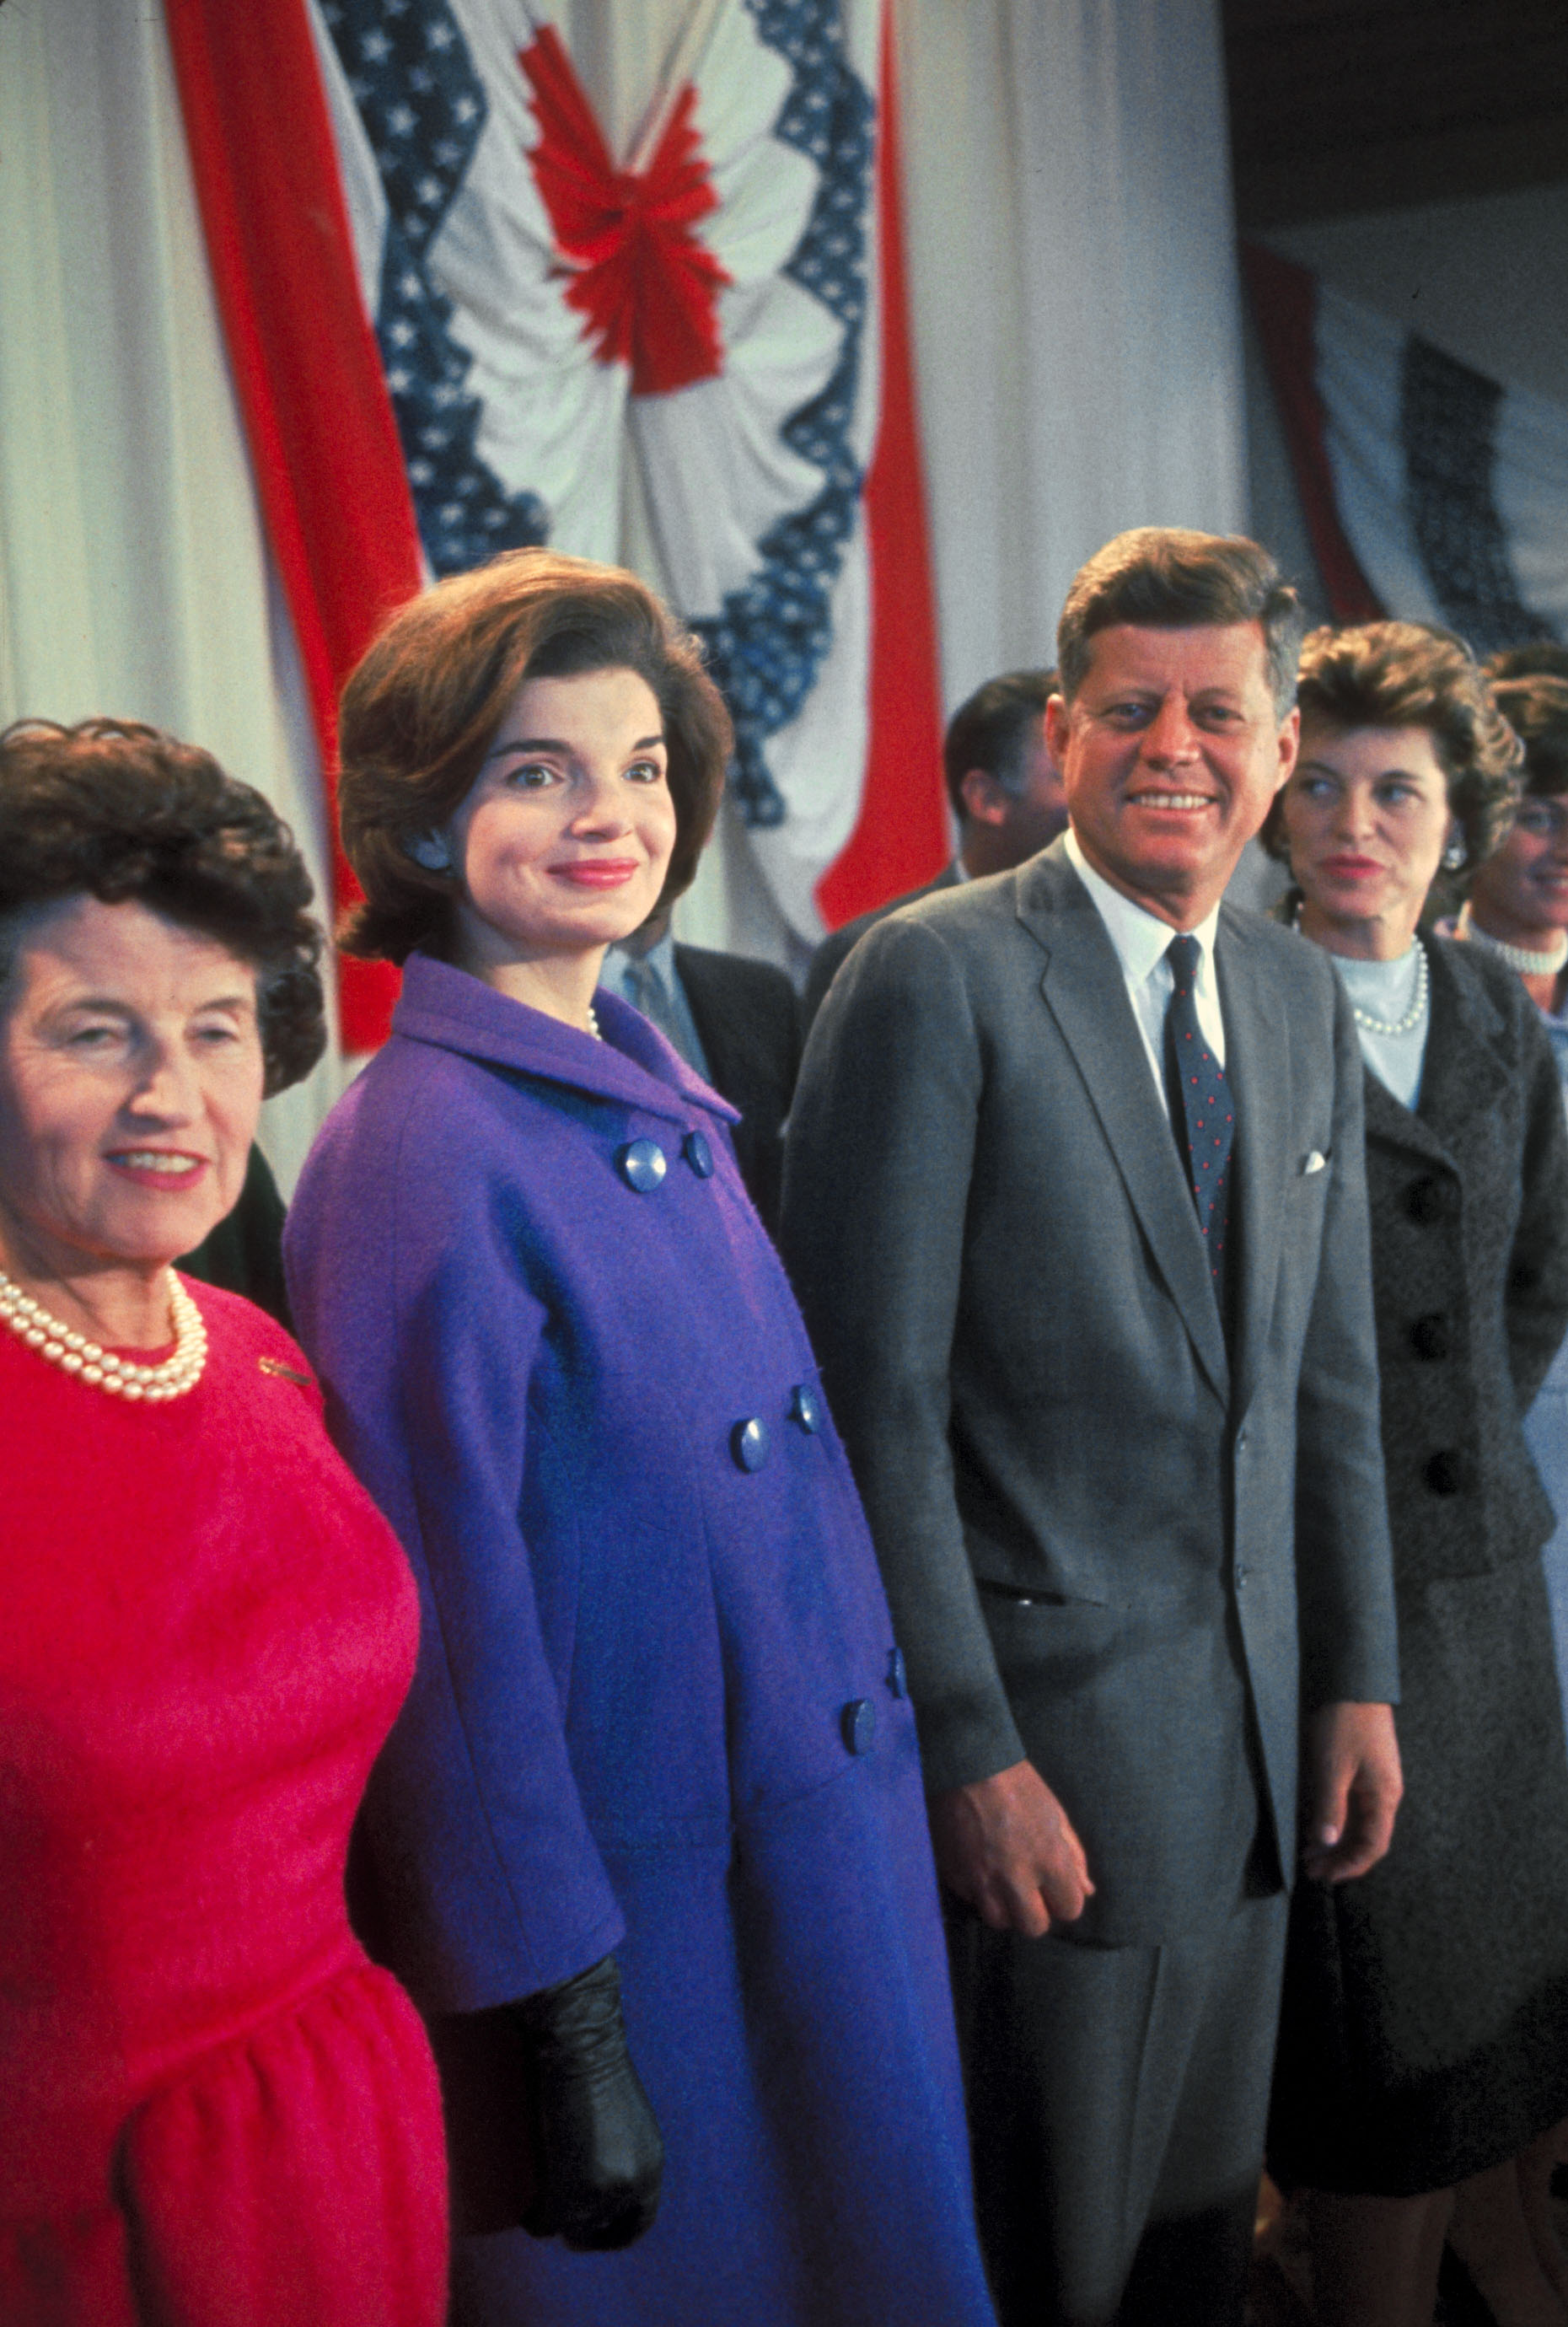 From left, Rose, Jackie, and President-elect John F. Kennedy on the morning after Election Day in 1960.